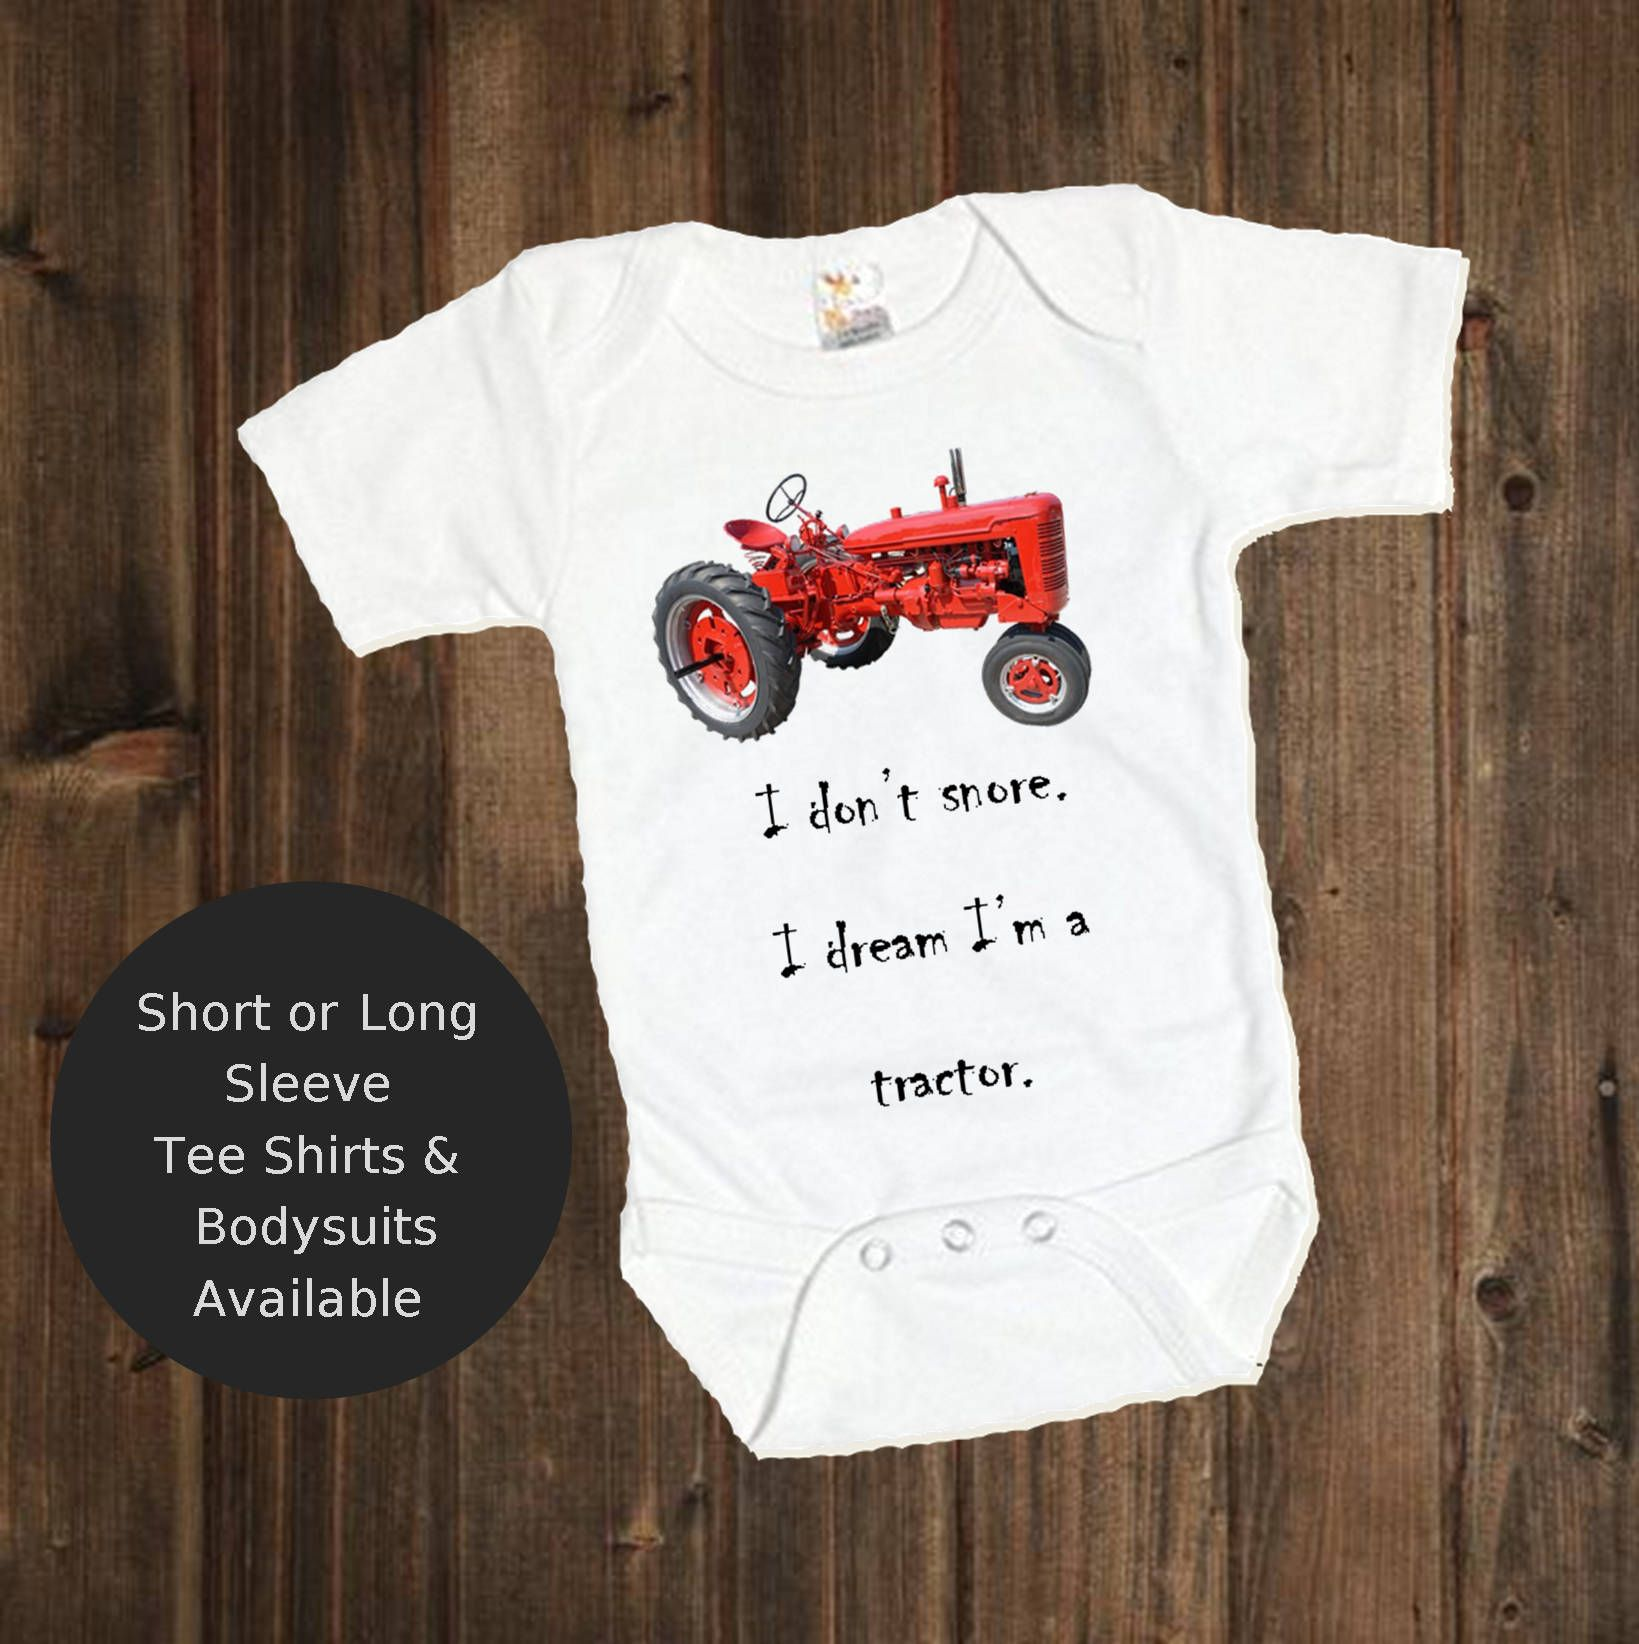 Funny Baby Grow REAL BOYS GO HARVESTING Vest Farmer Clothes Body Suit